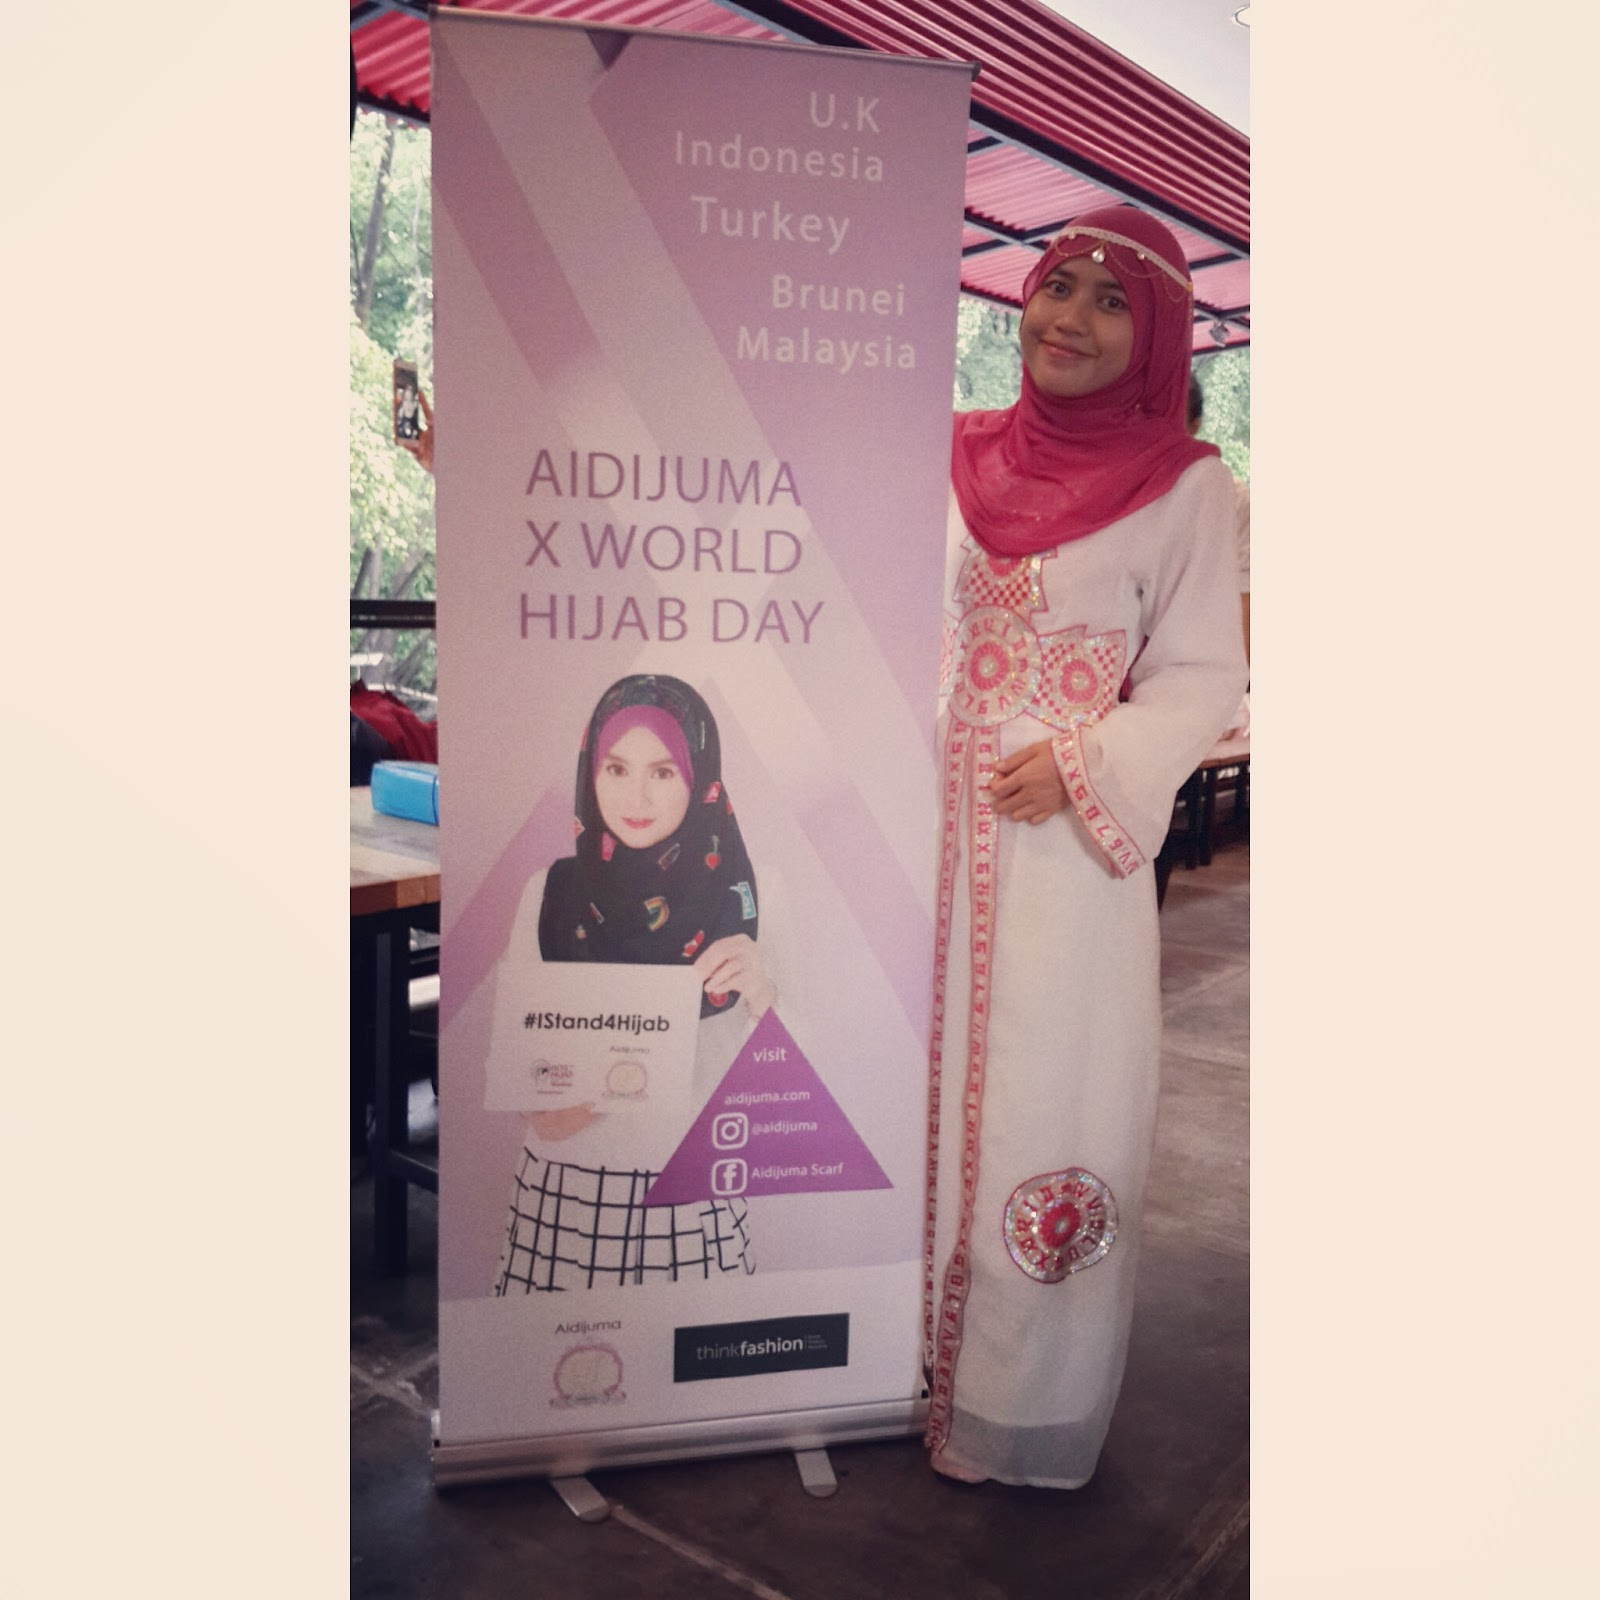 Aidijuma X World Hijab Day : Spread Love with Hijab - Man Jadda Wajada